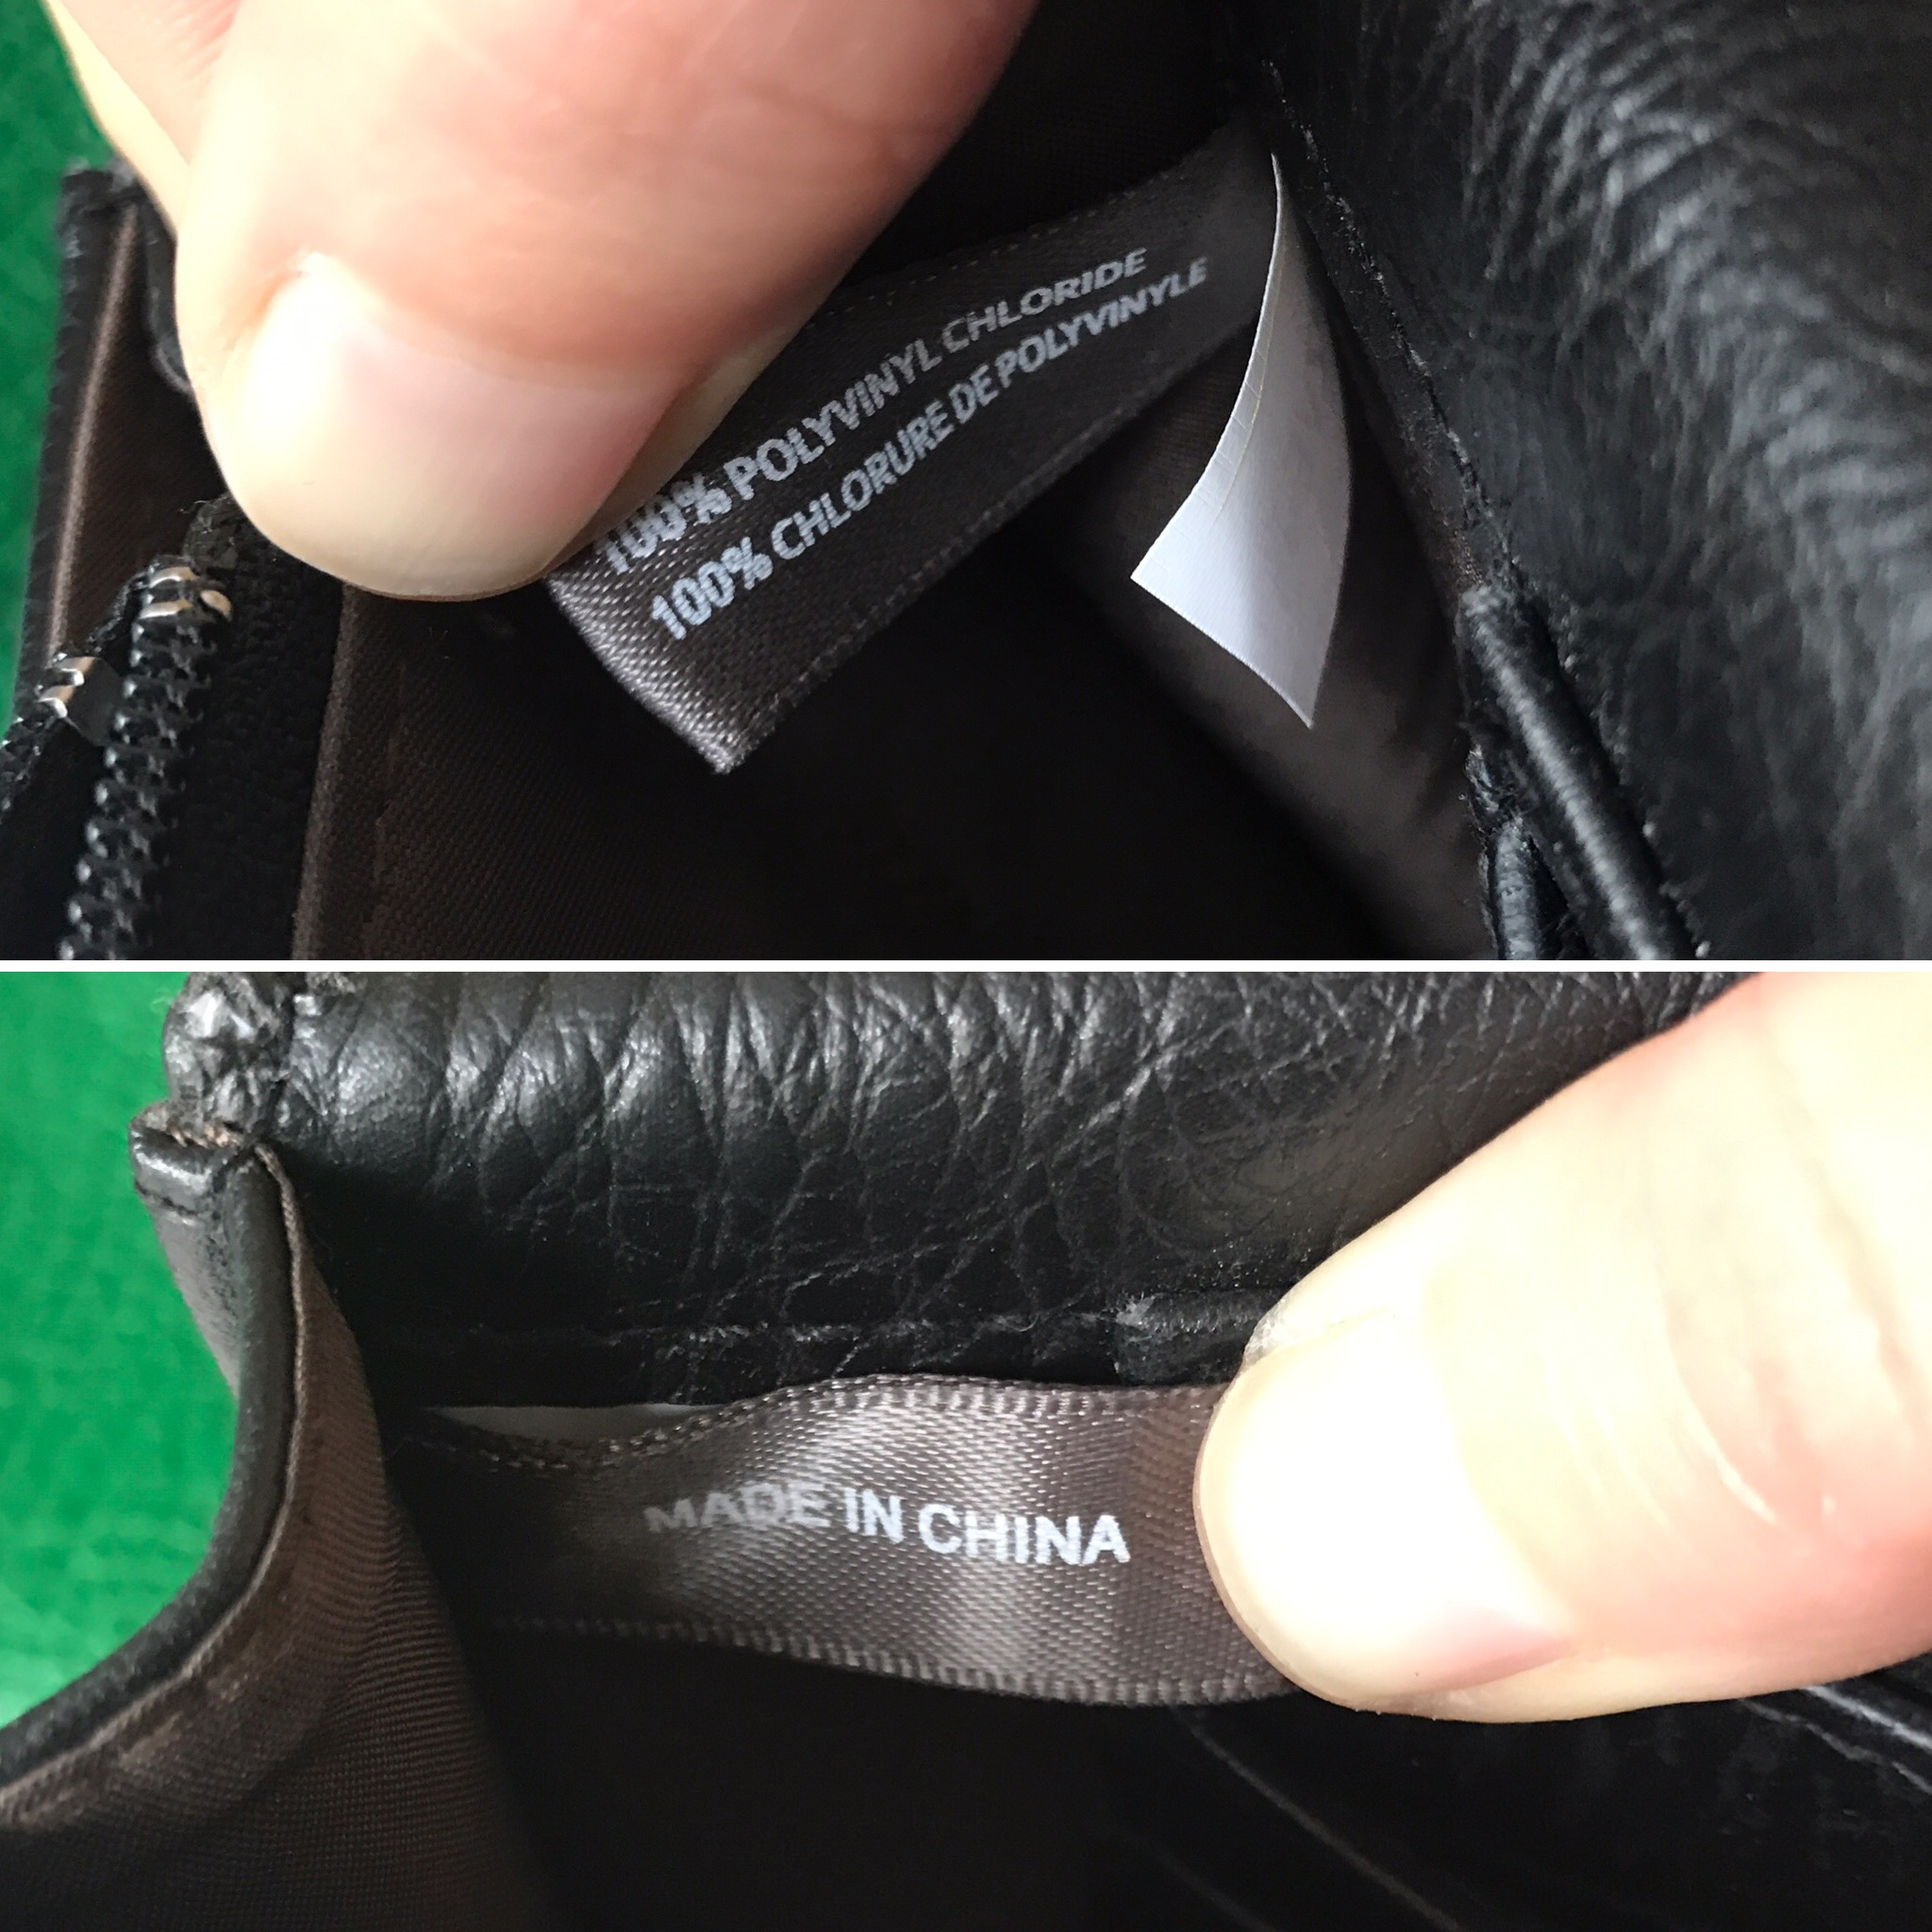 Check out the tags on my Matt & Nat clutch. :(